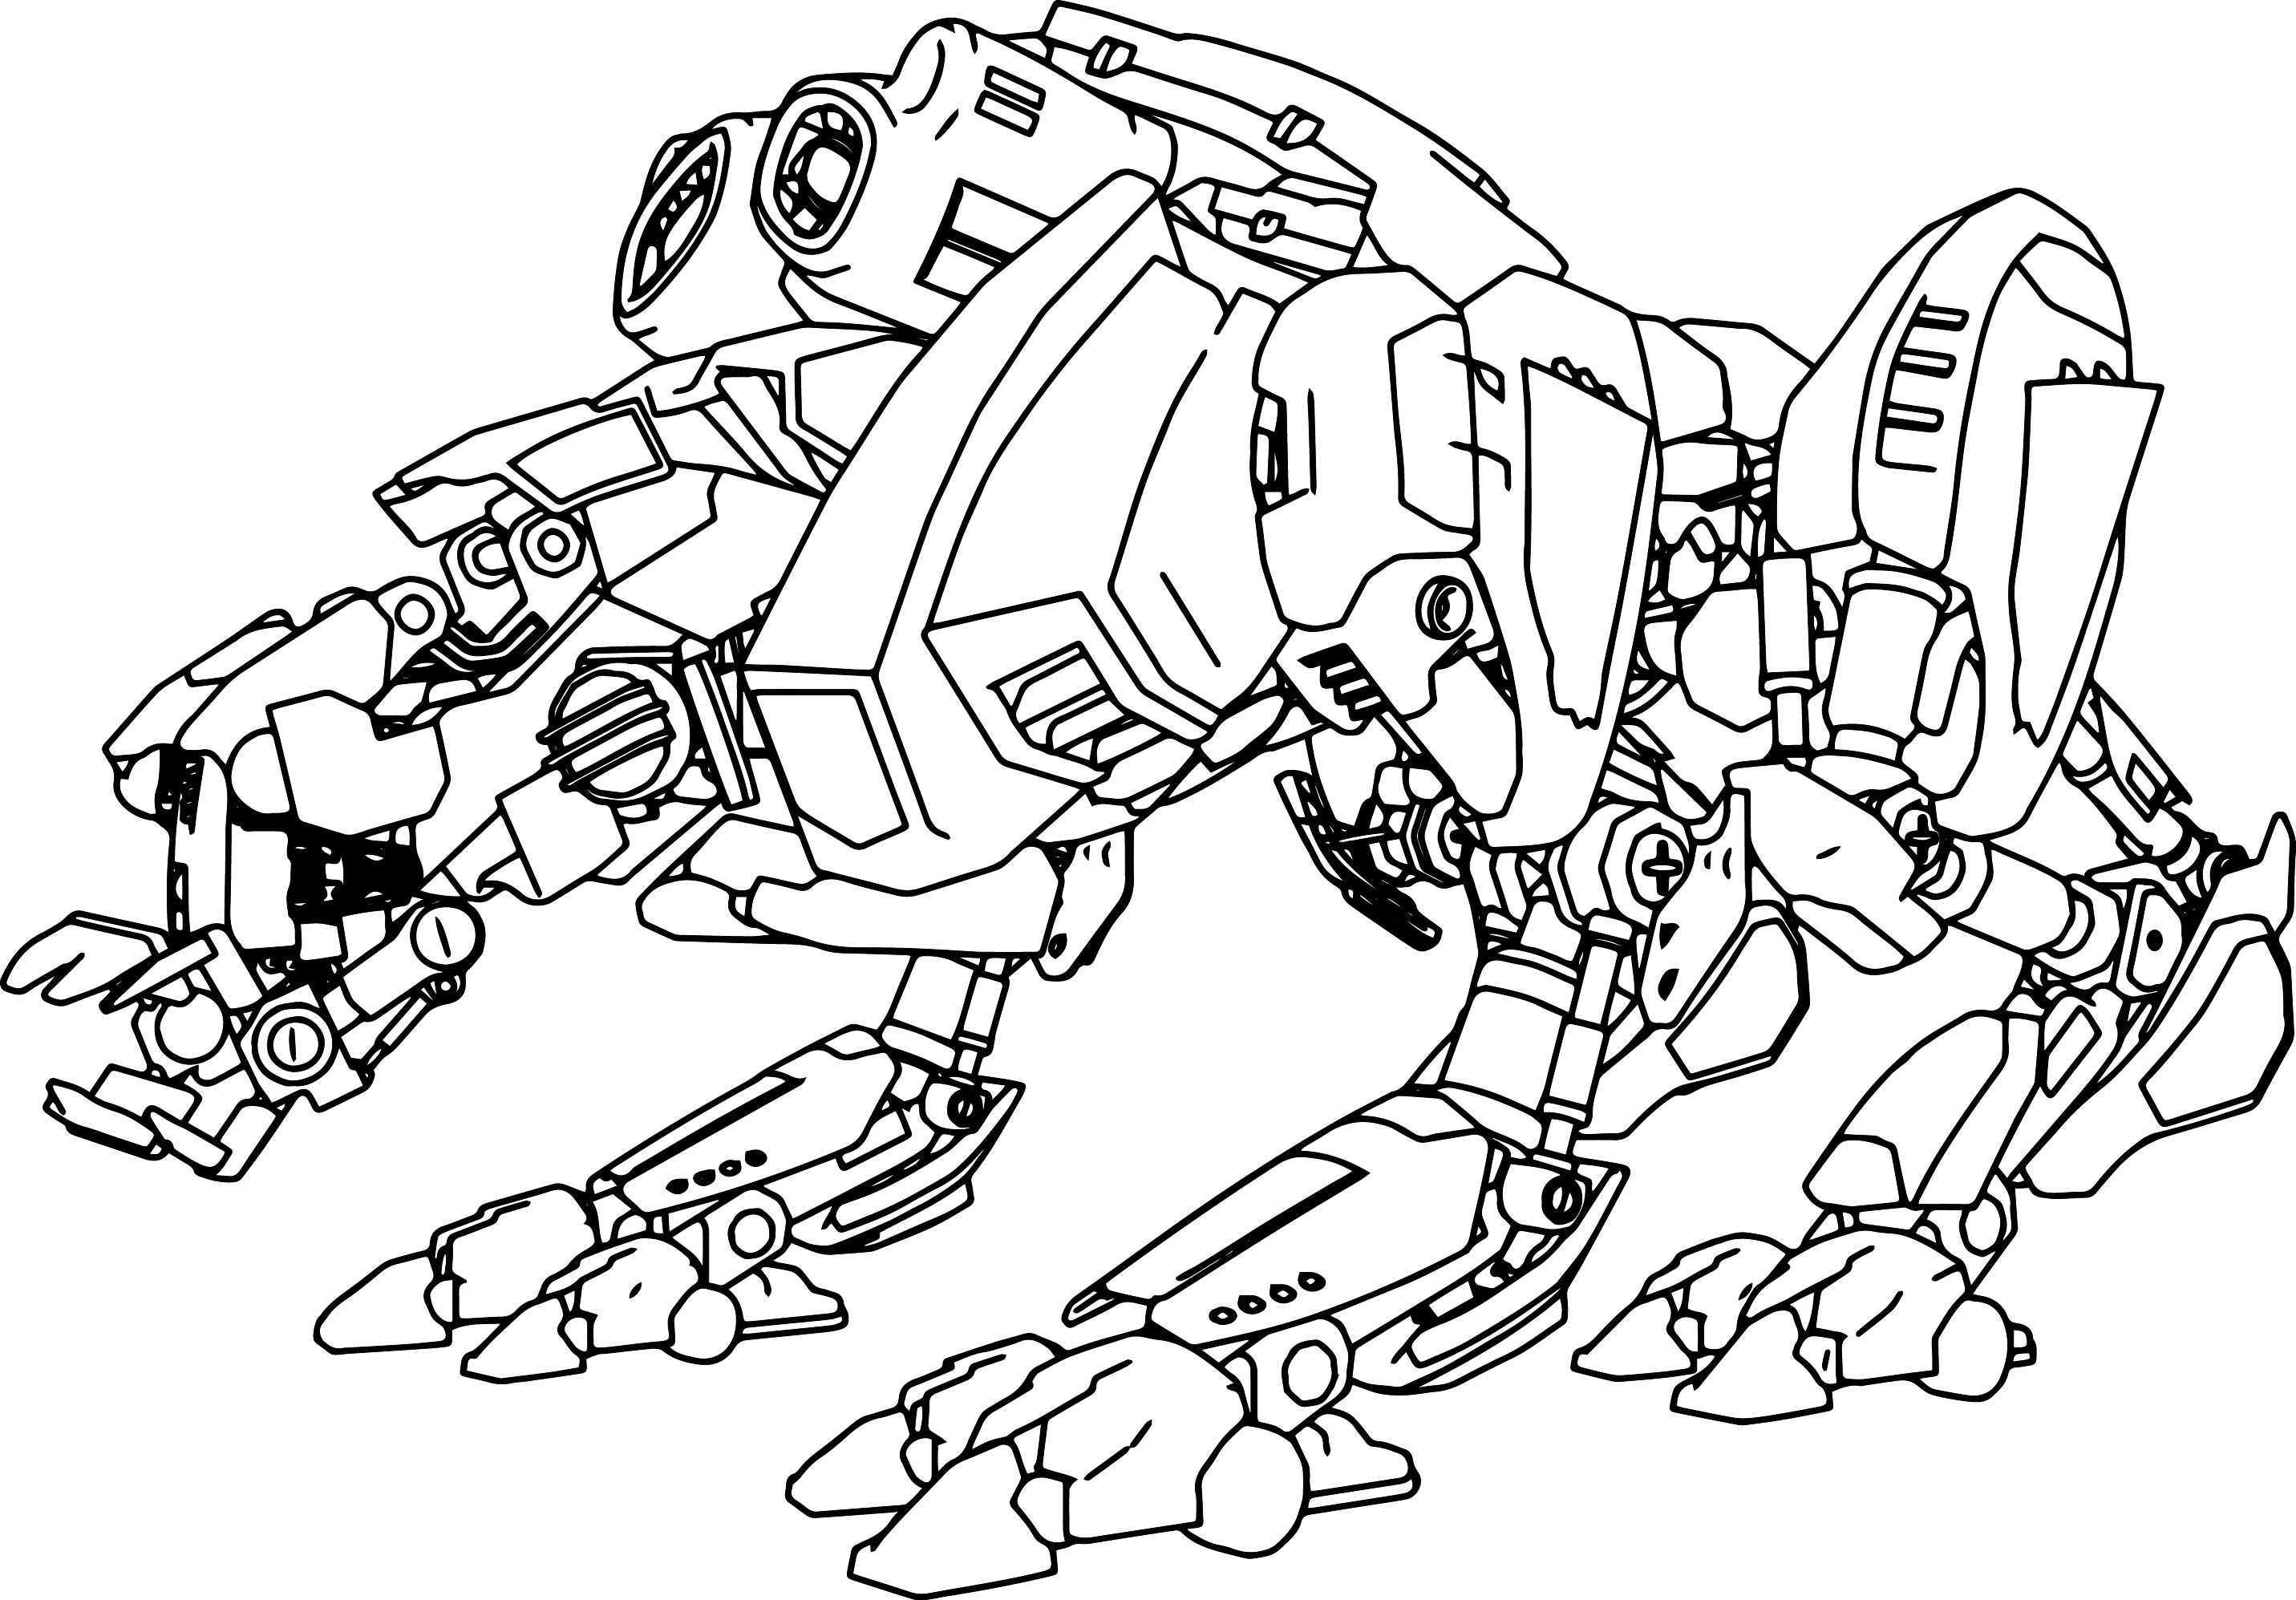 Real Steel Coloring Pages At Getdrawings Free Download